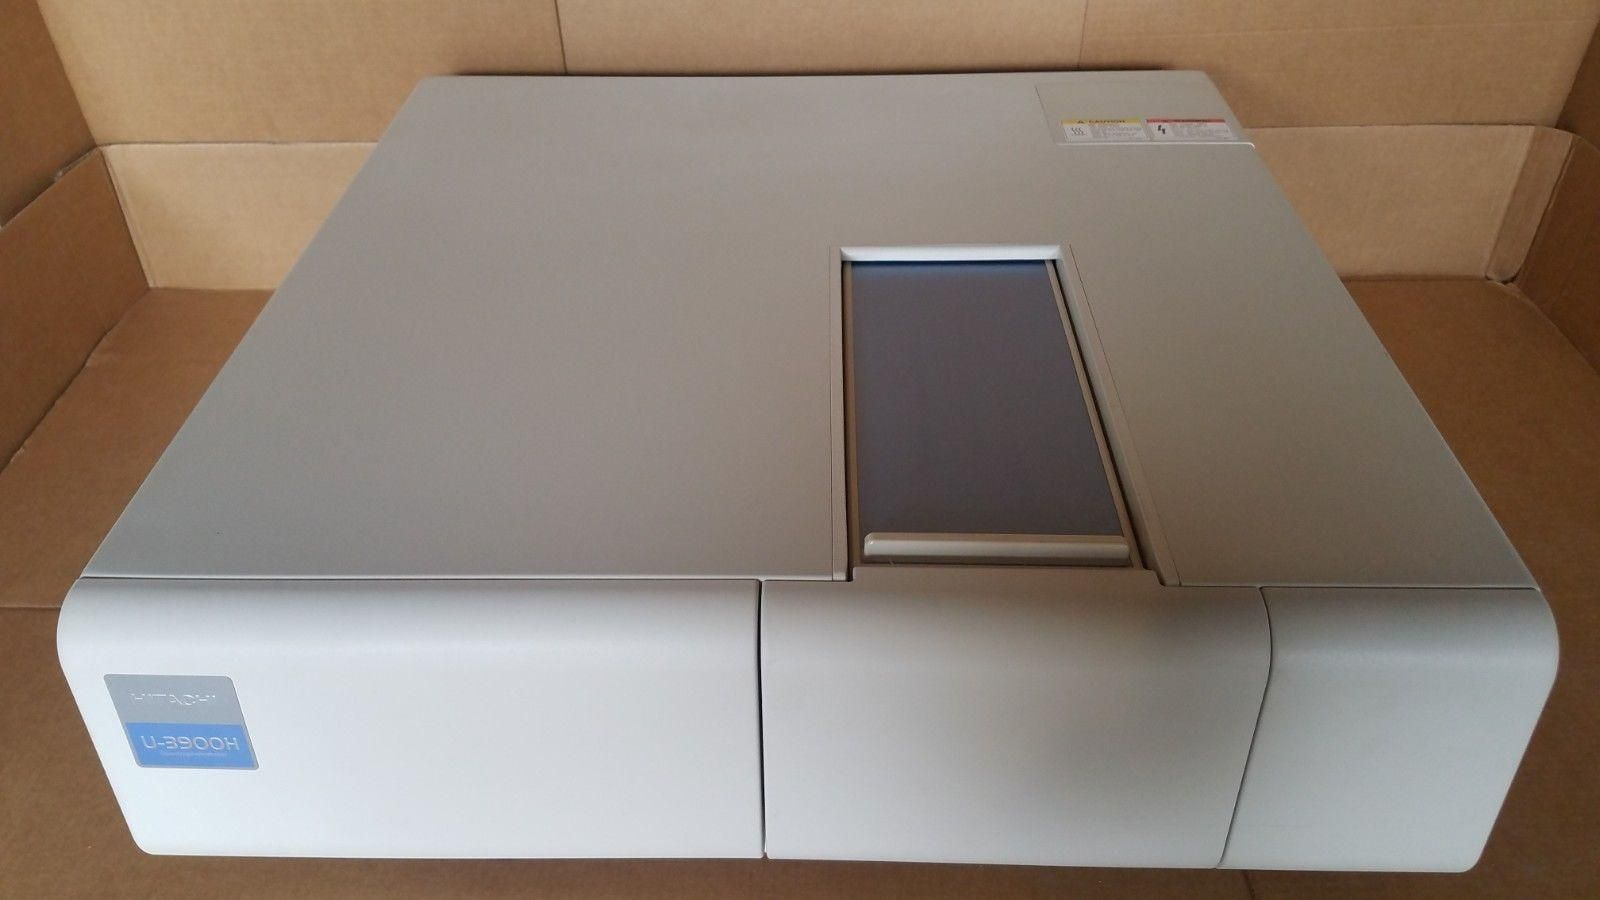 Hitachi U3900H Spectrophotometer - includes software!